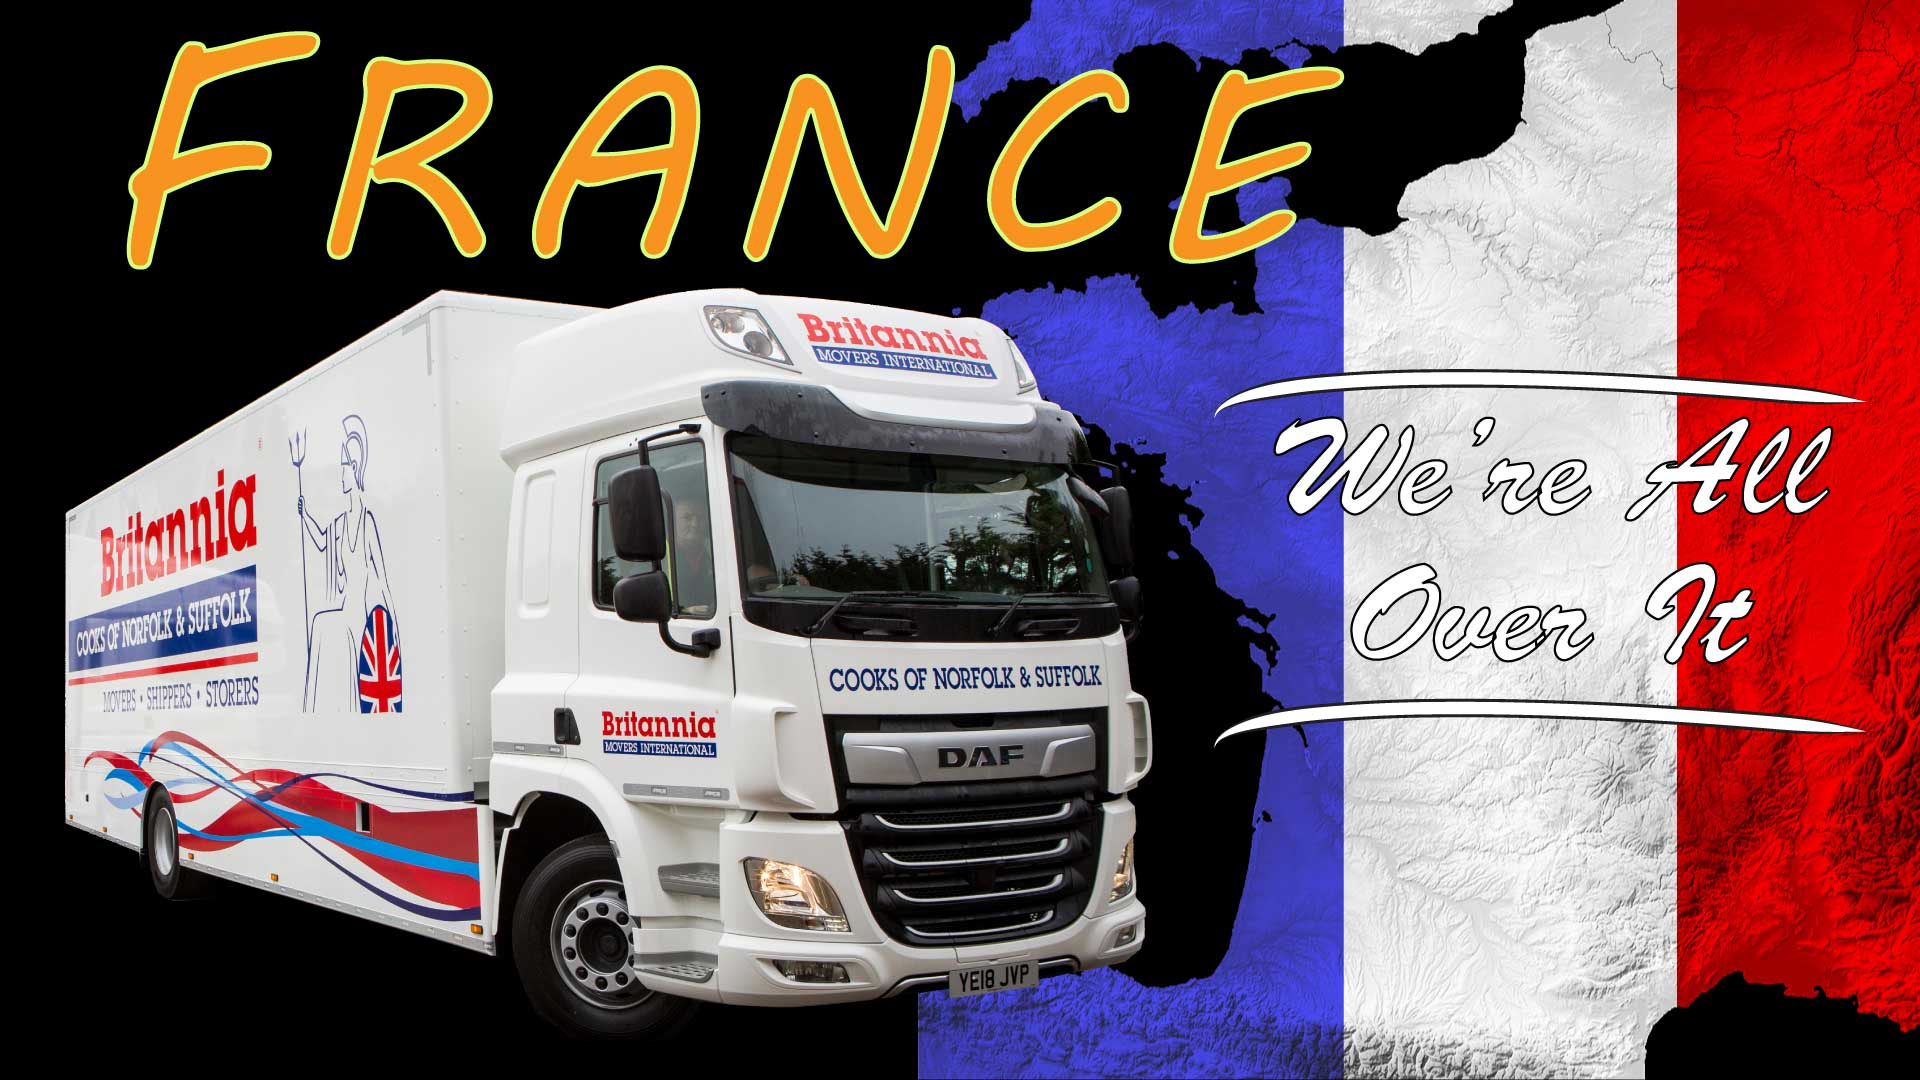 Regular service to France  - Alan Cook Removals - Of all the Norwich Removals Companies we pride ourselves in offering the most prfessional, 